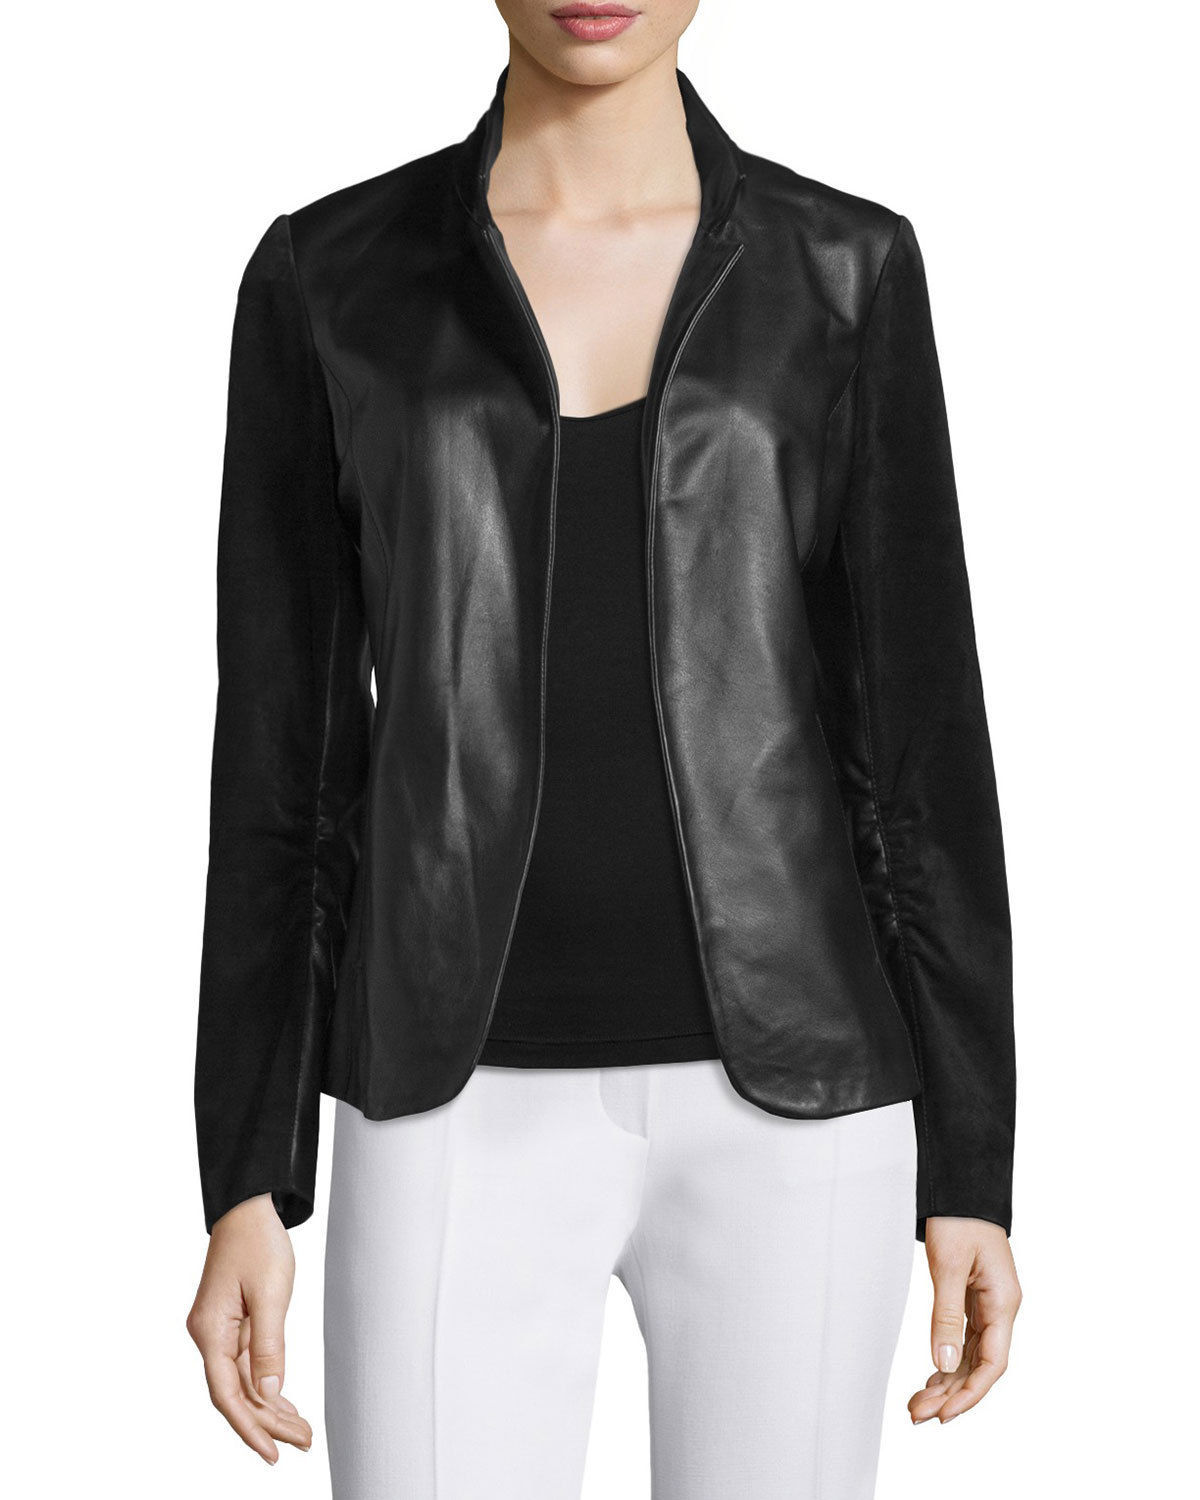 WOMEN BIKER MOTORCYCLE CASUAL SLIM FIT RIDER REAL GENUINE  LEATHER JACKET-A99